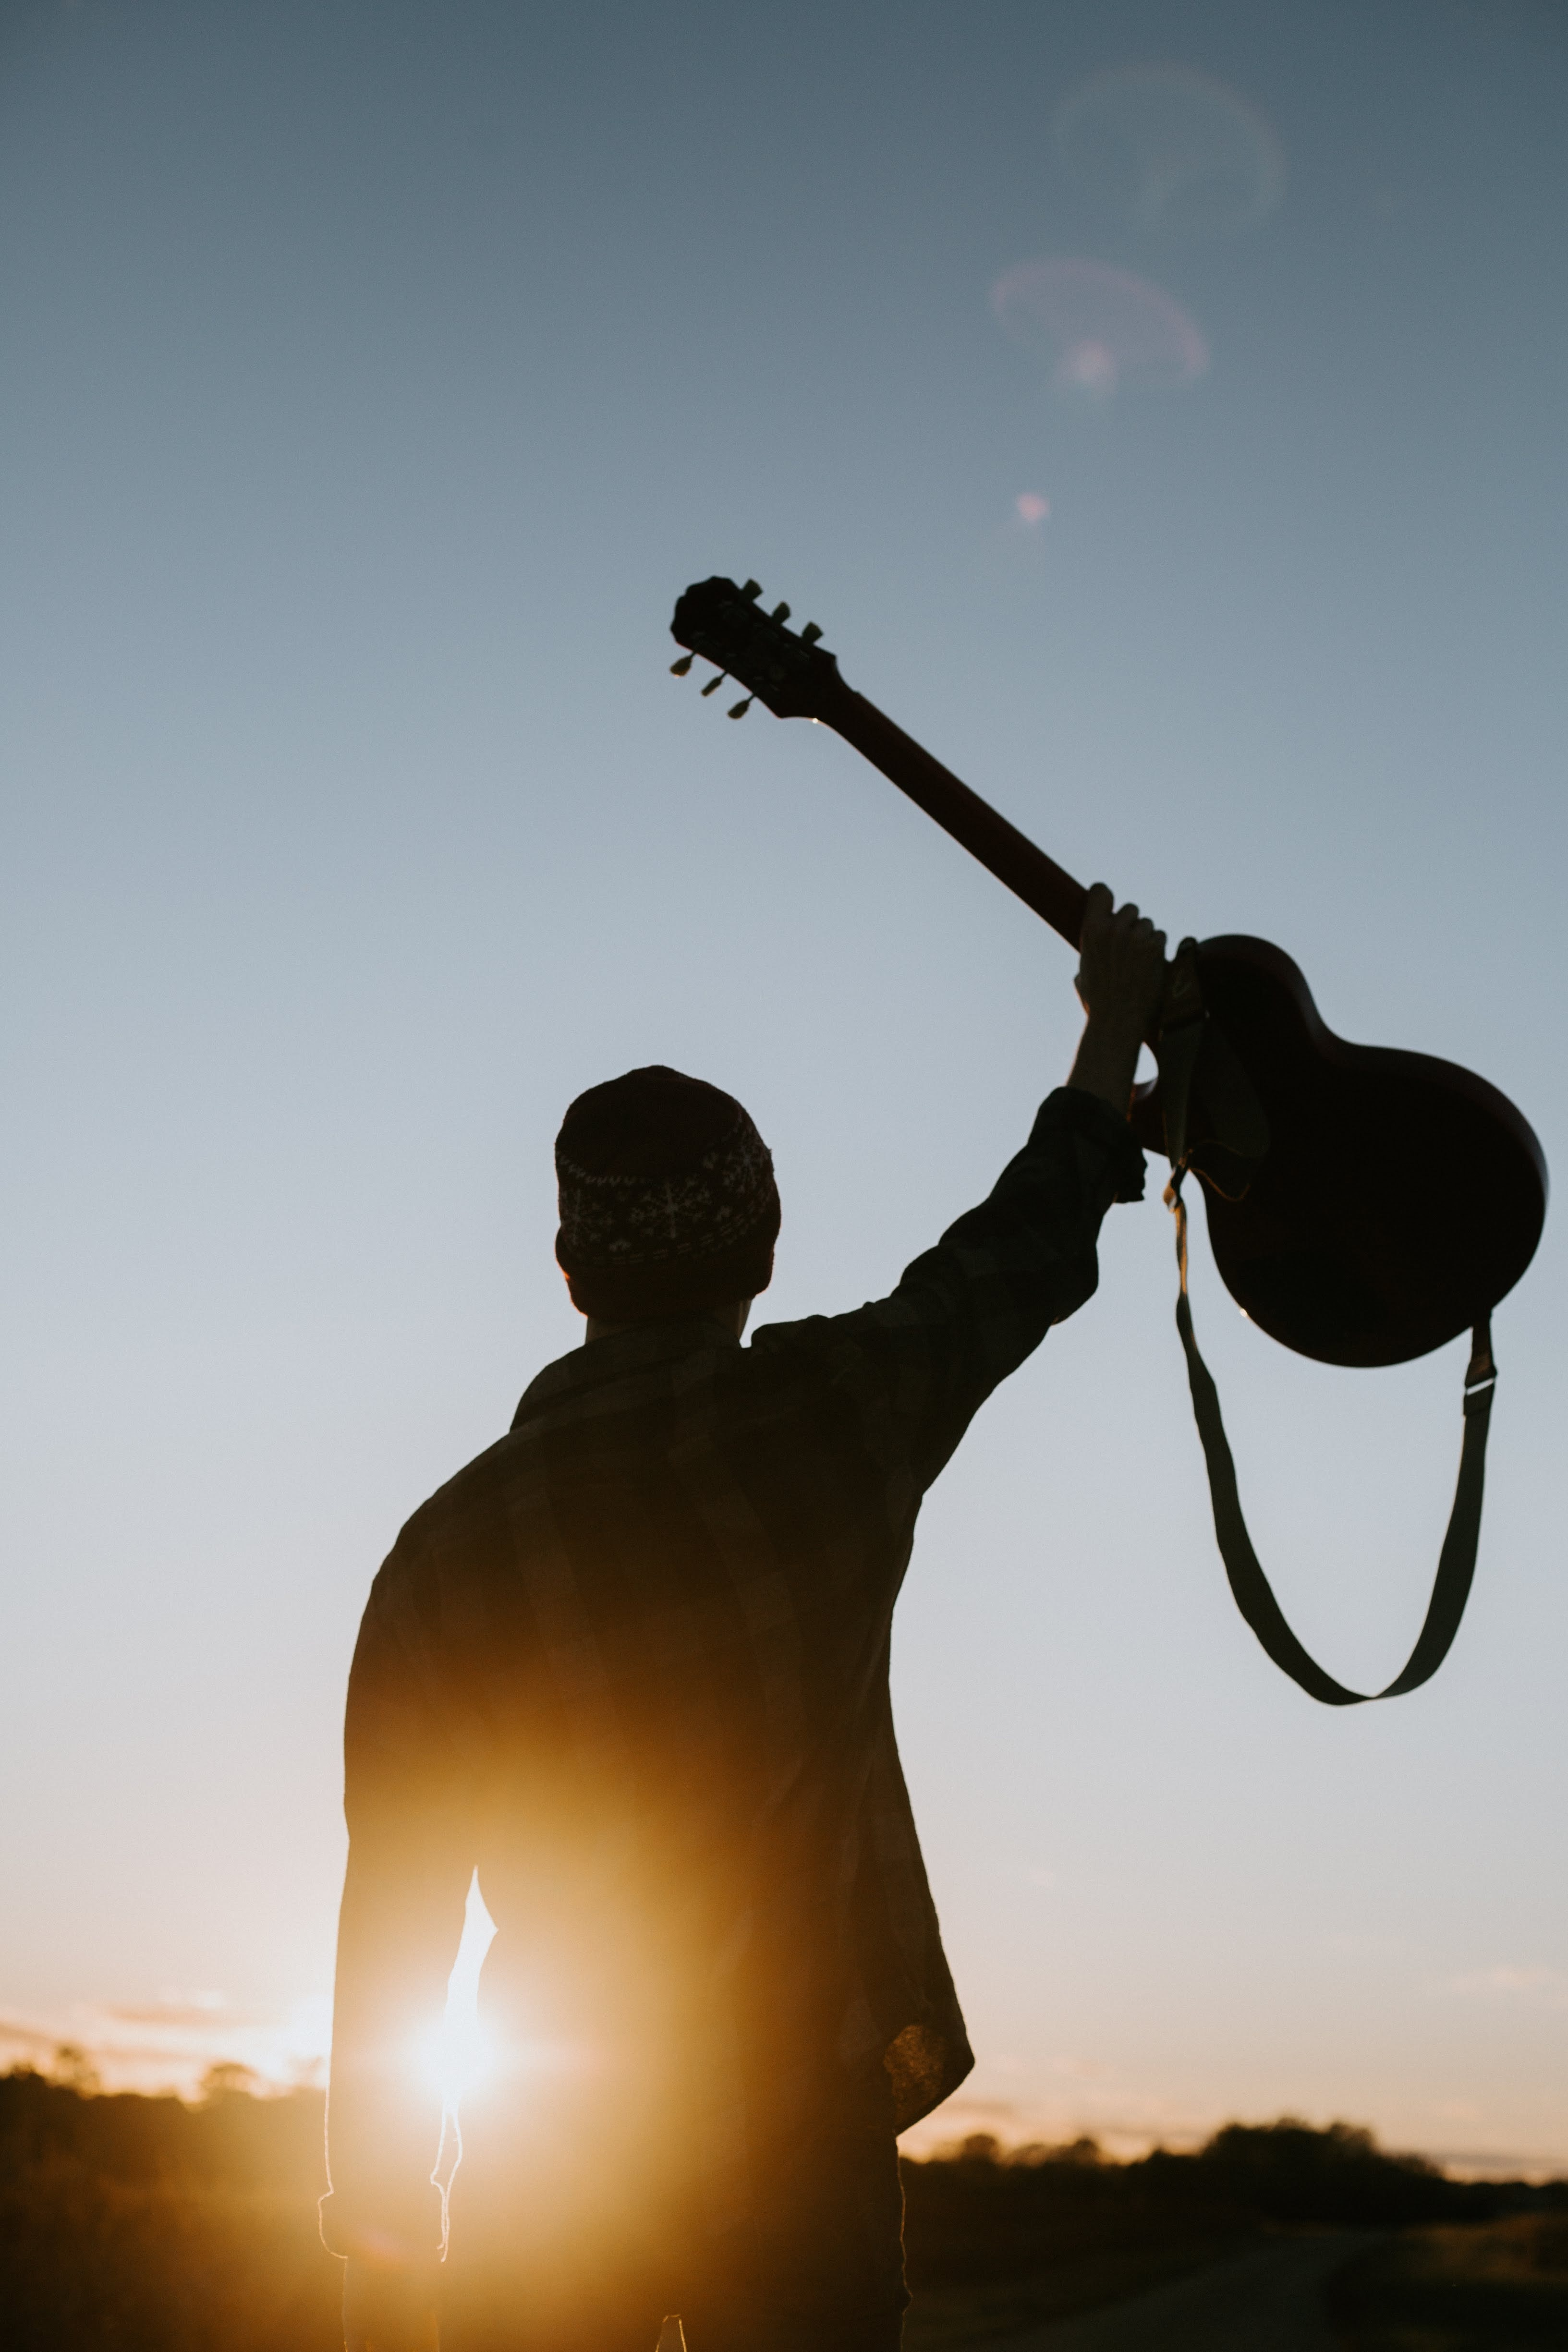 114002 download wallpaper Miscellanea, Miscellaneous, Guitar, Silhouette, Beams, Rays, Sun screensavers and pictures for free